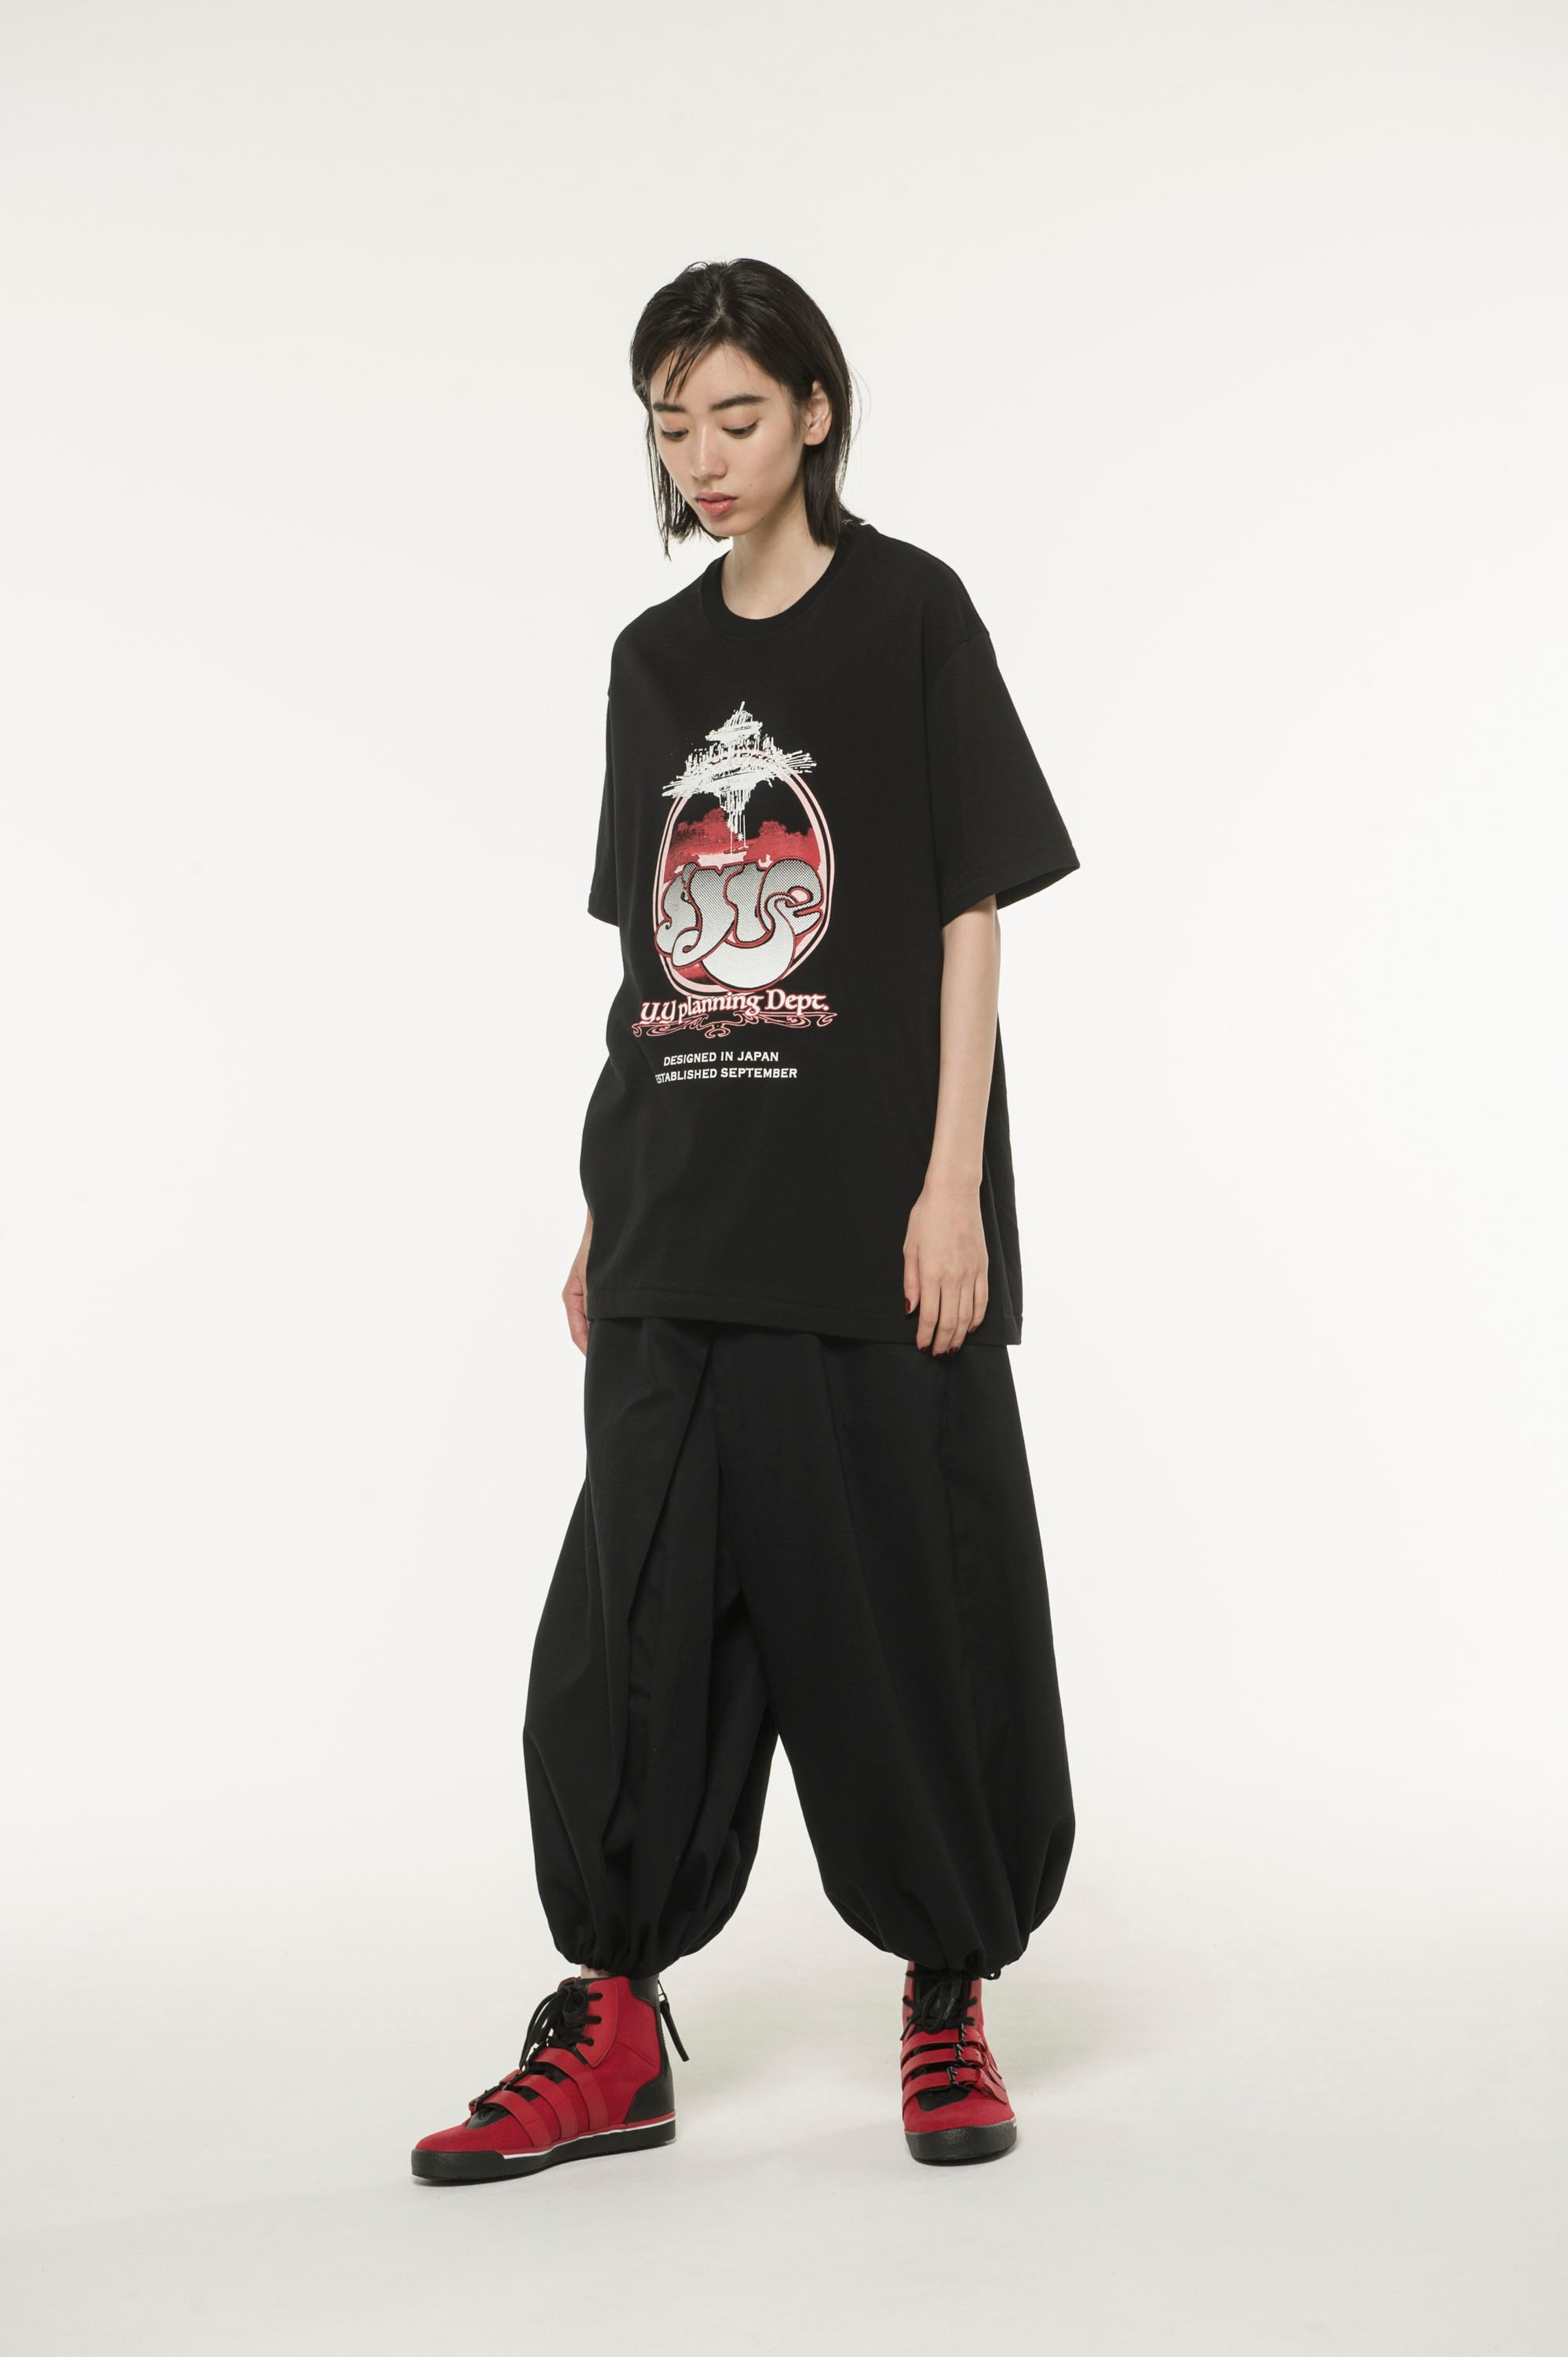 20 / CottonJersey S'YTE Songs T-shirt